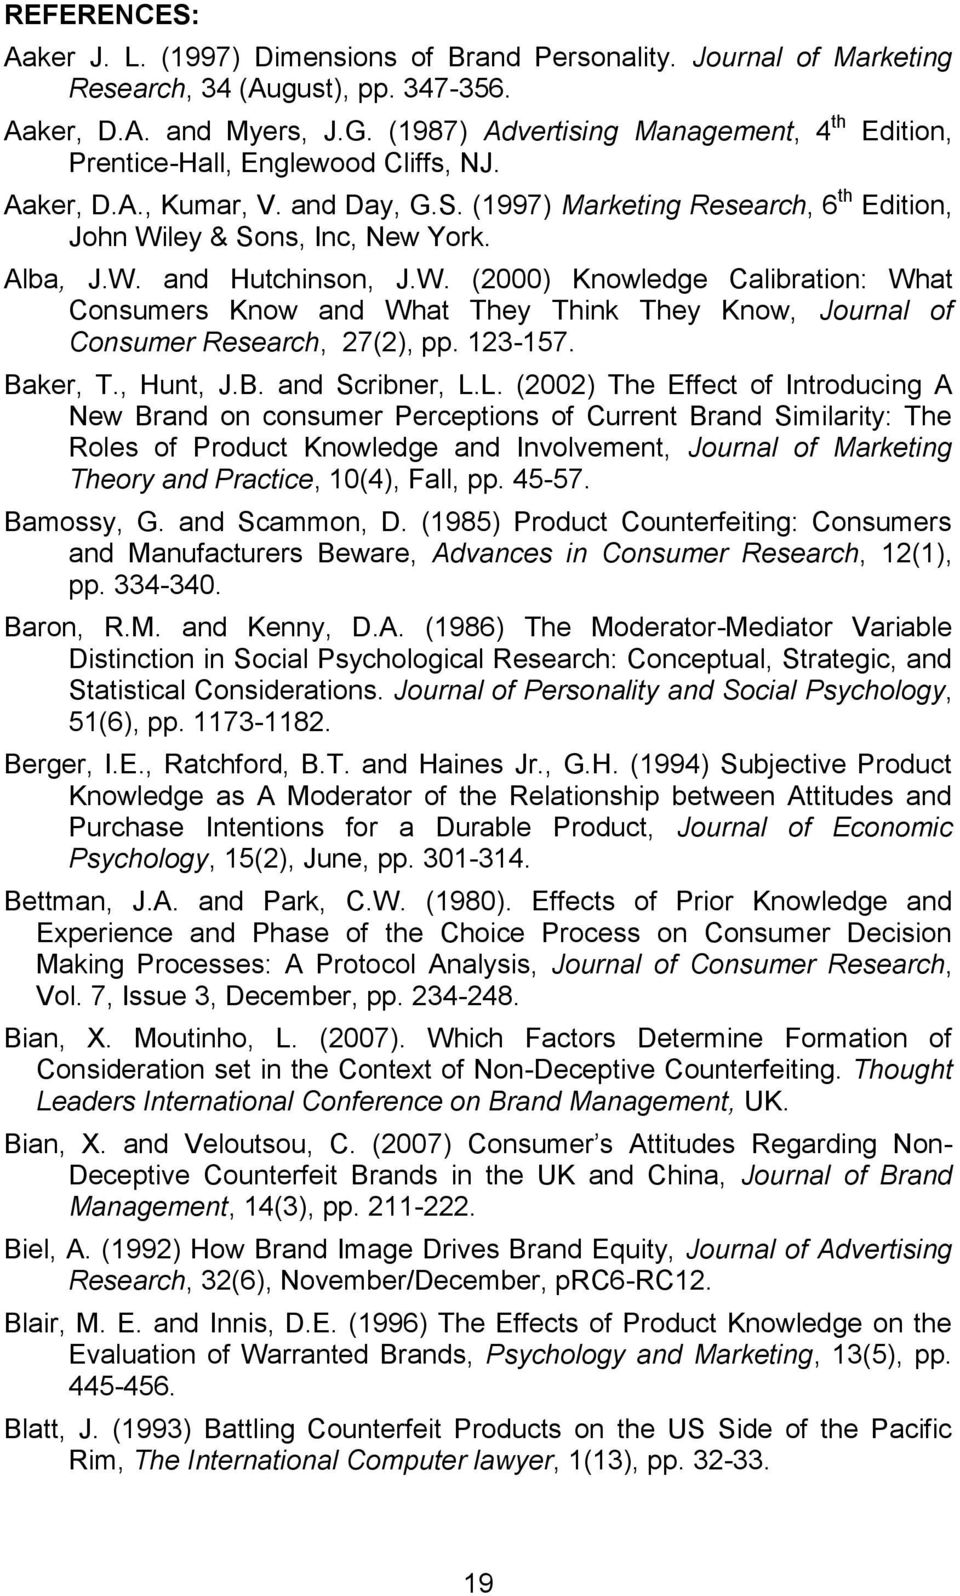 Alba, J.W. and Hutchinson, J.W. (2000) Knowledge Calibration: What Consumers Know and What They Think They Know, Journal of Consumer Research, 27(2), pp. 123-157. Baker, T., Hunt, J.B. and Scribner, L.